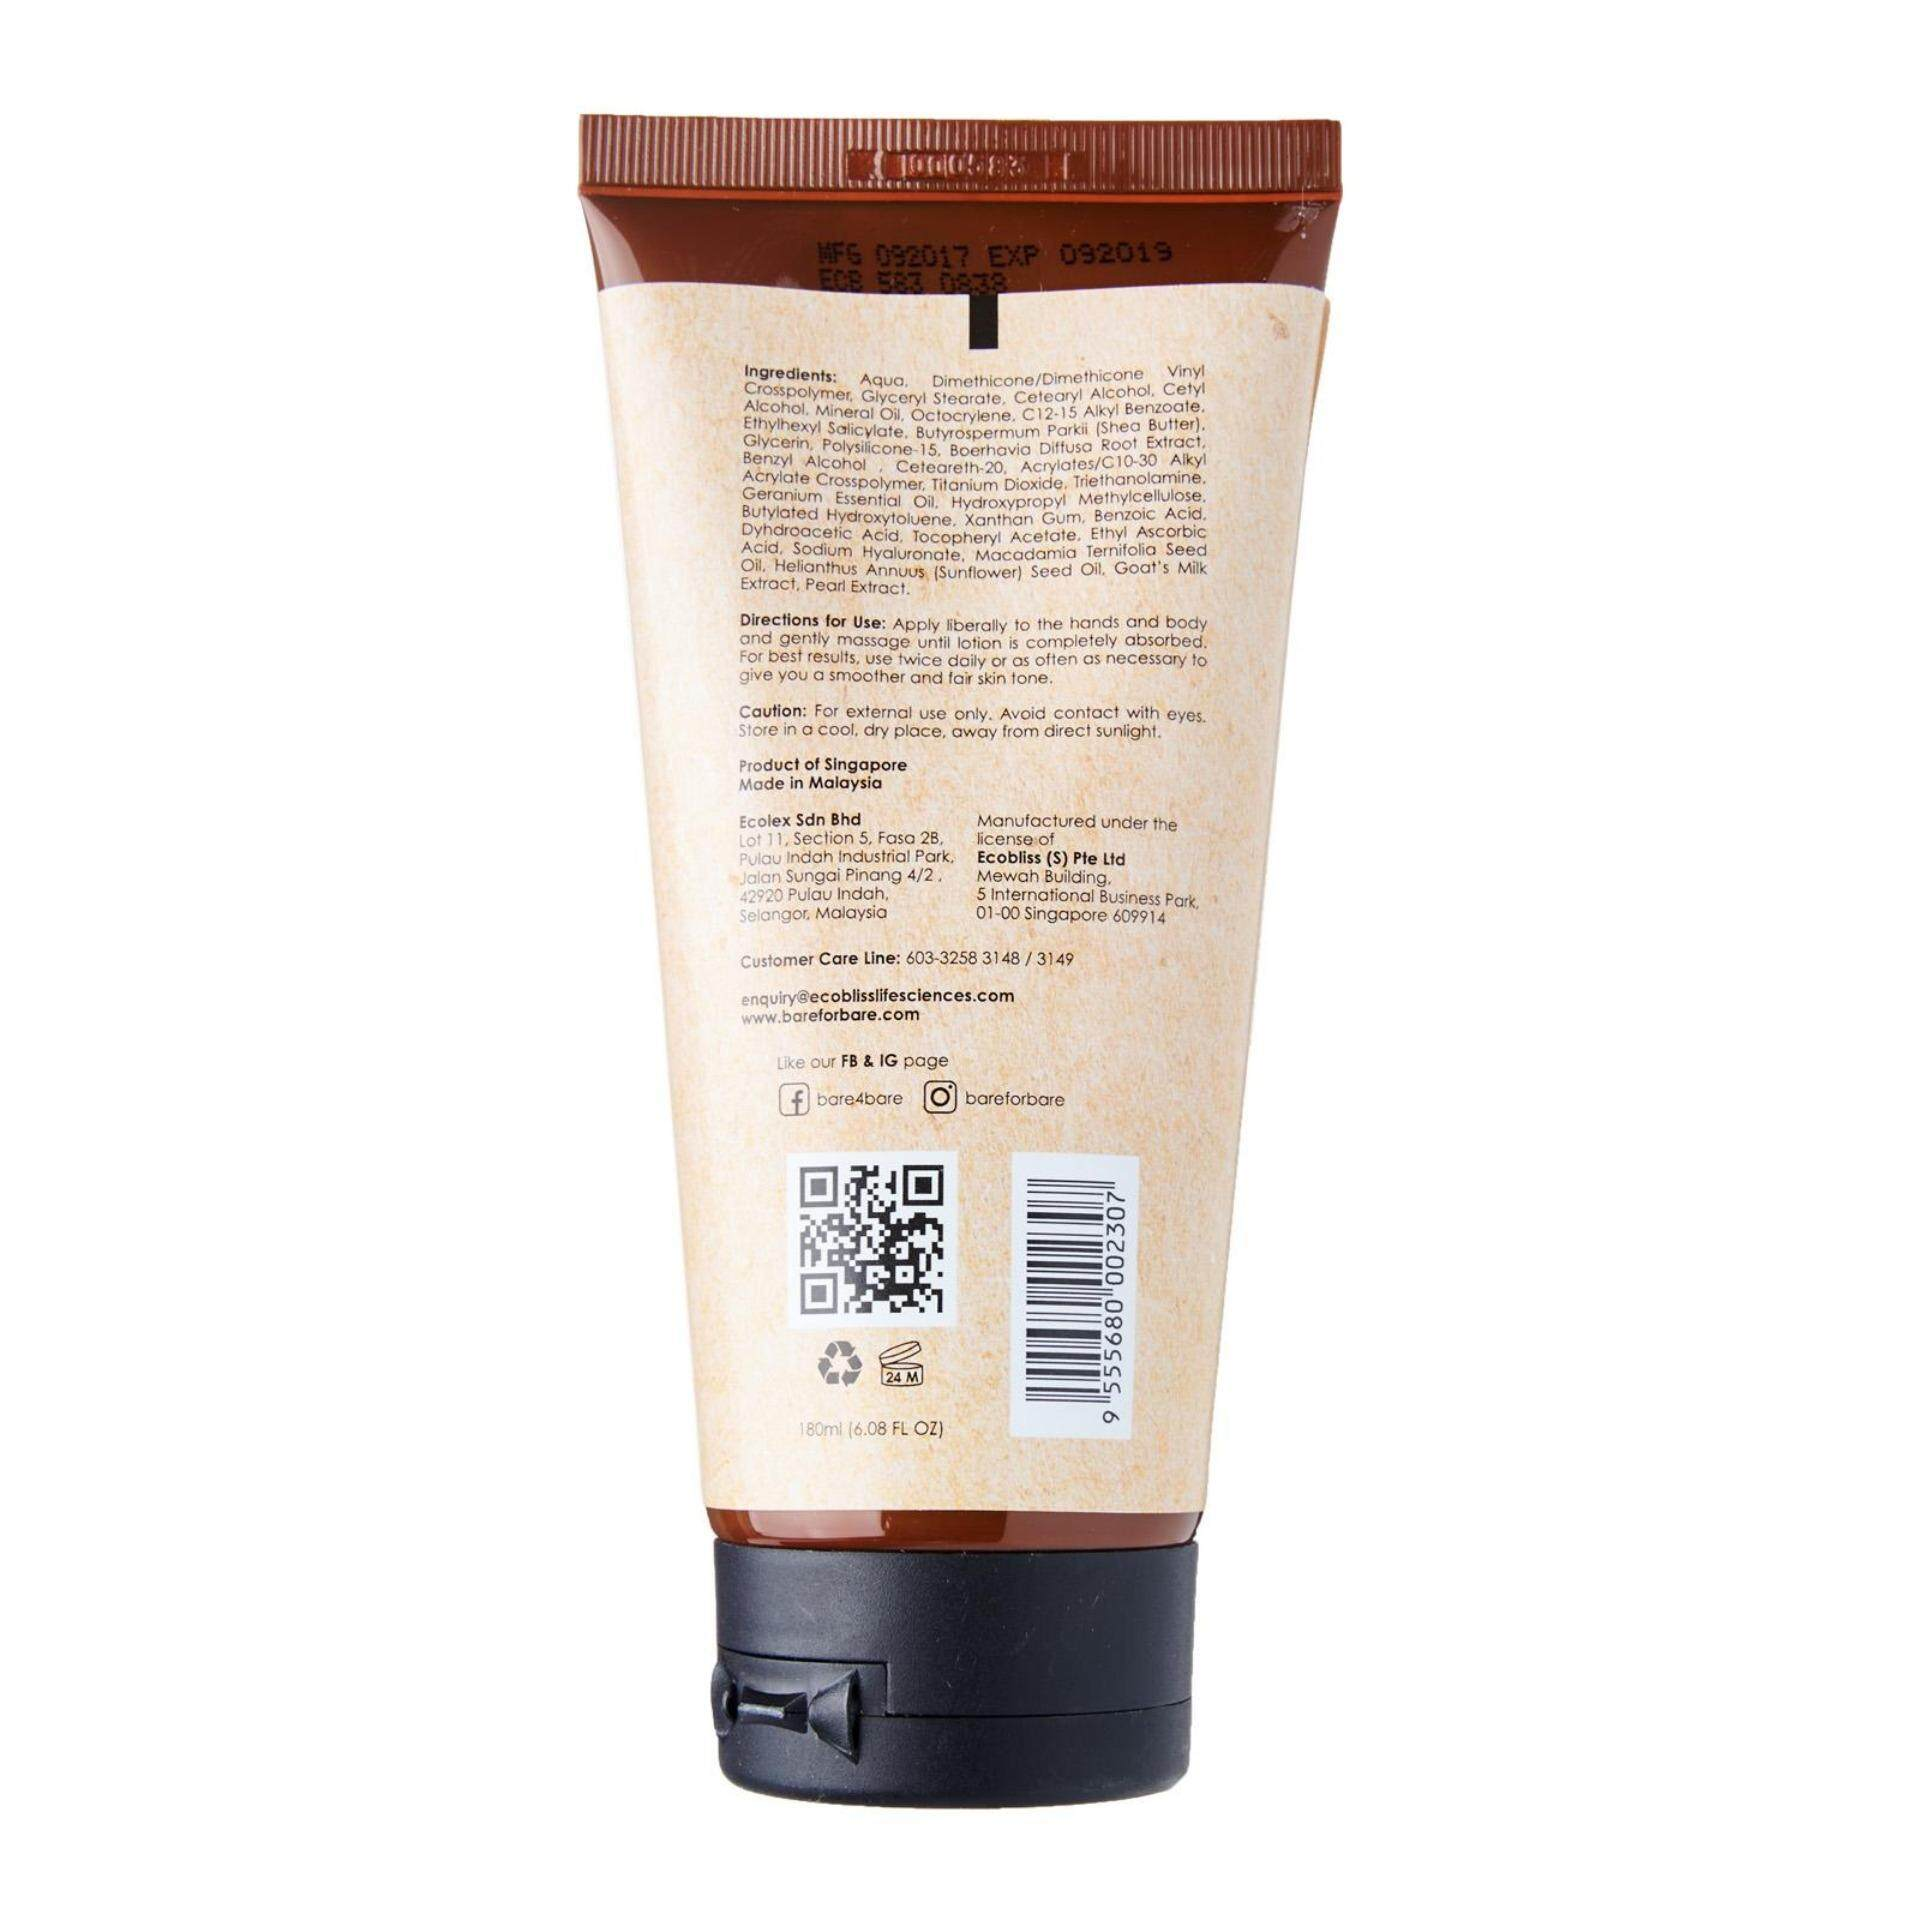 Bare for Bare Whitening & Nourishing Body Lotion SPF 15 180ml [Paraben Free, Silicone Free, 100% Botanical Extracts, Natural Body Care]